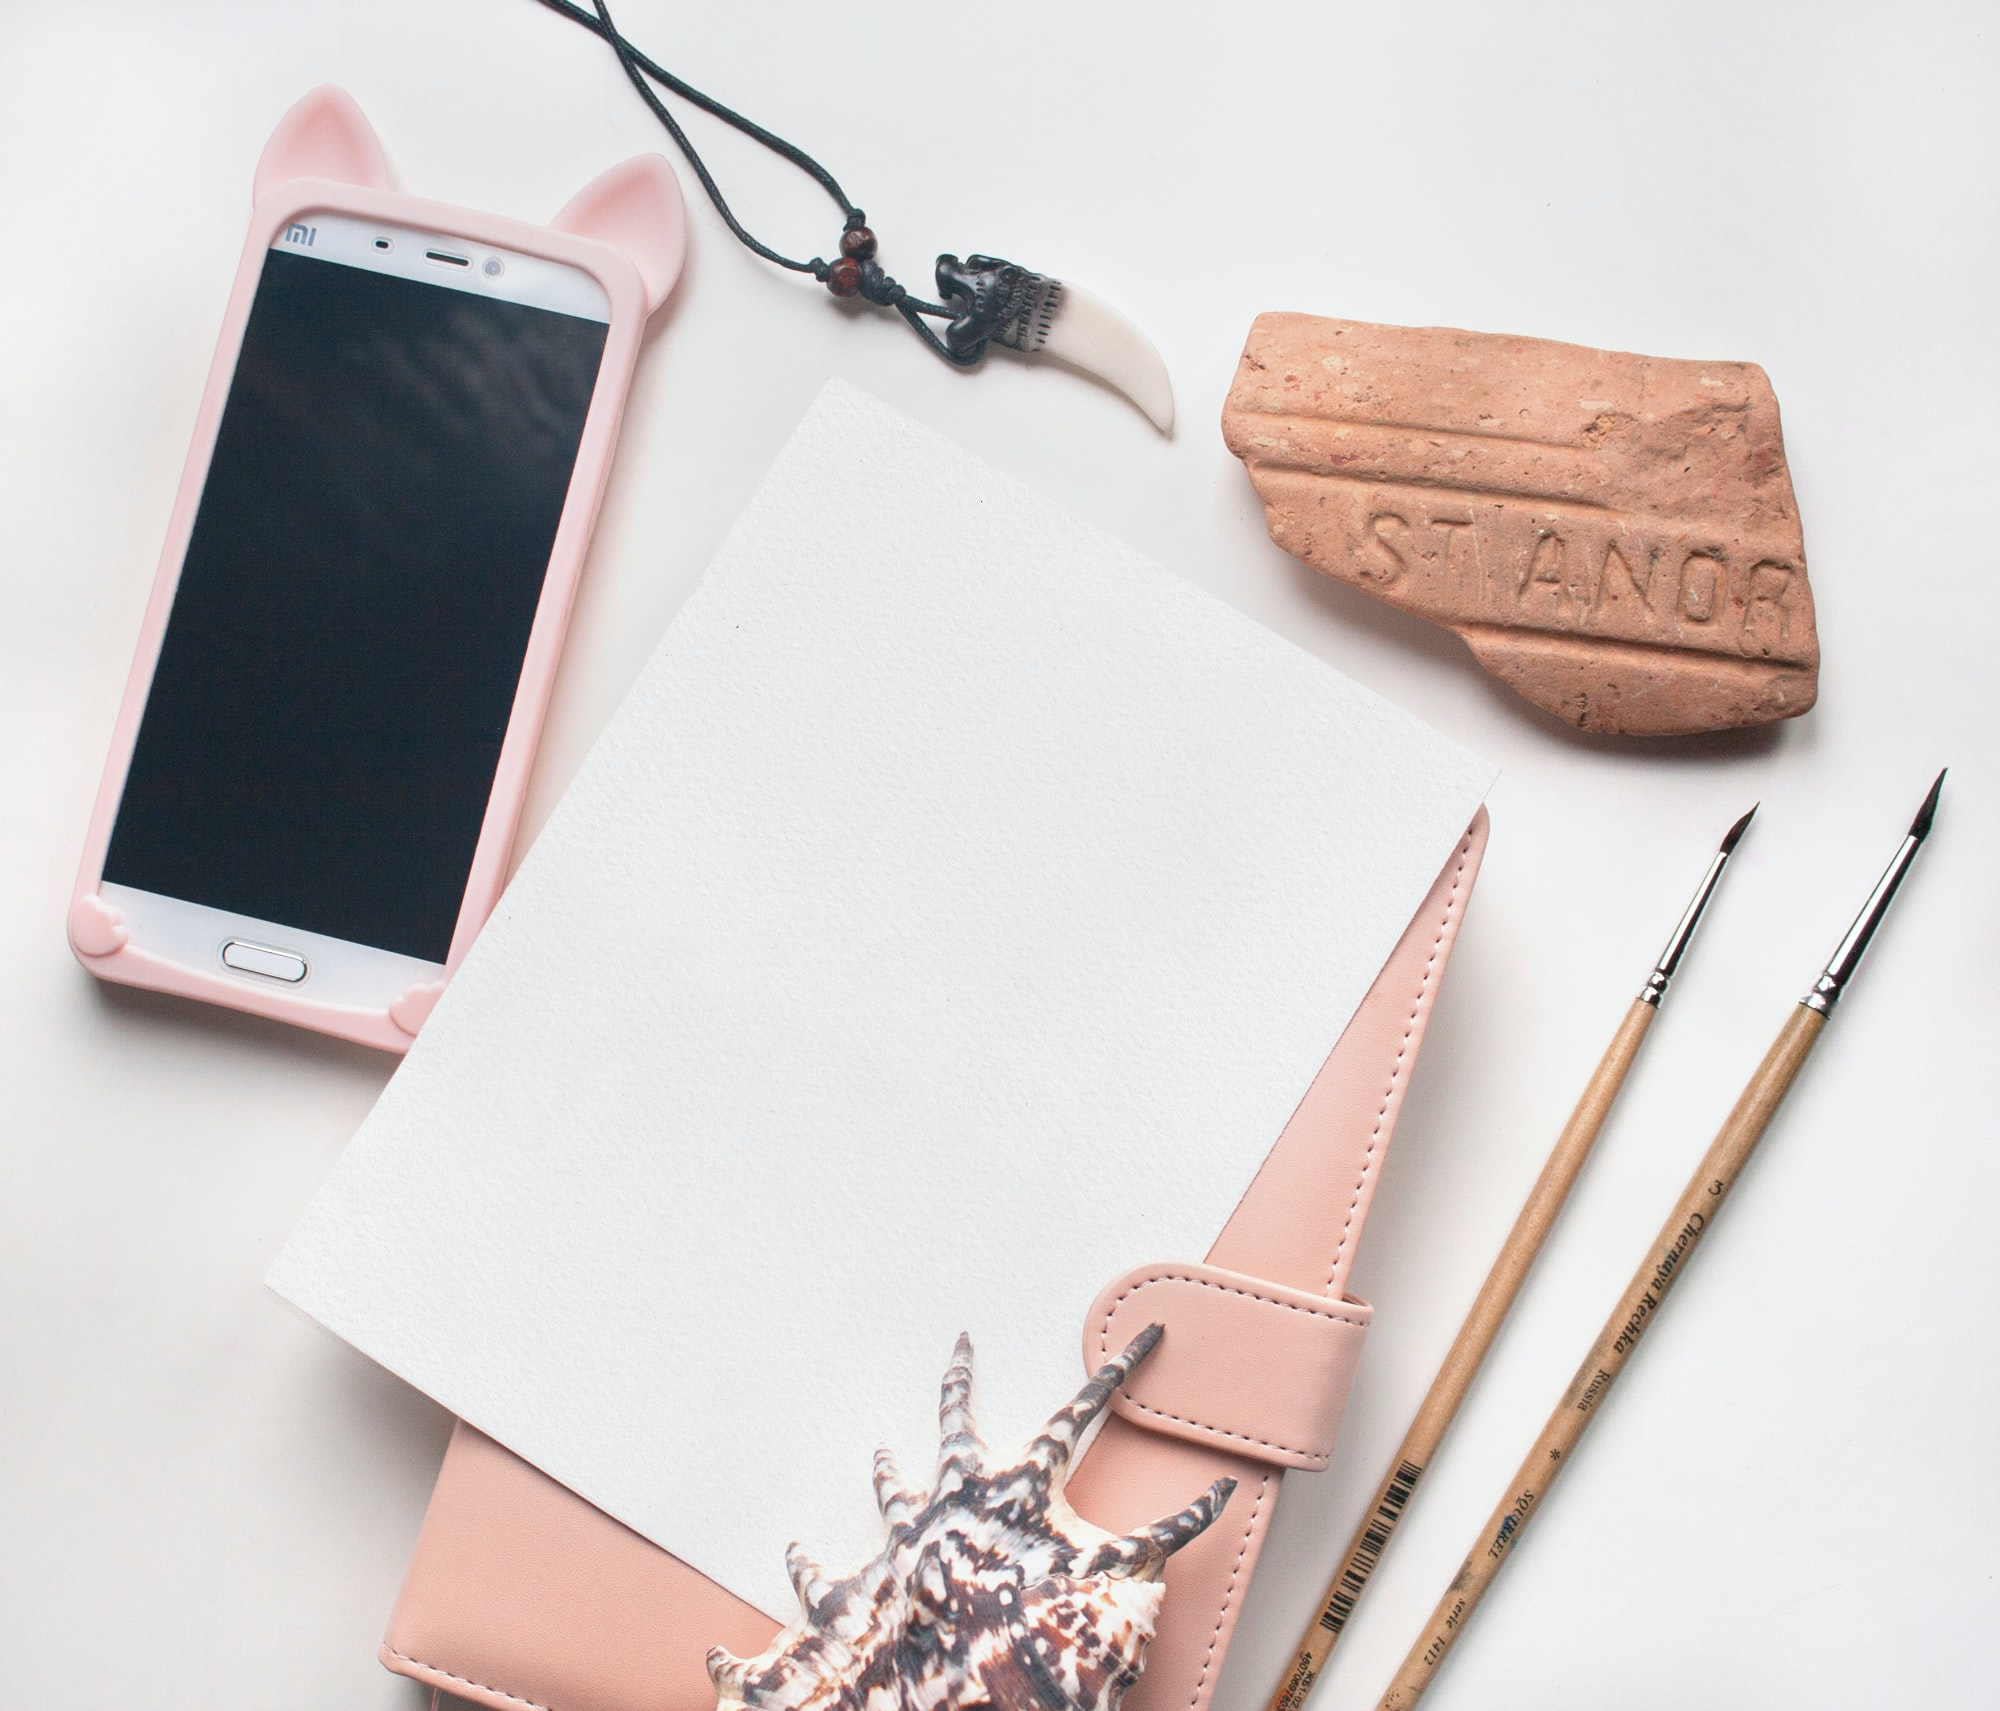 wallet and smartphone on white wooden board